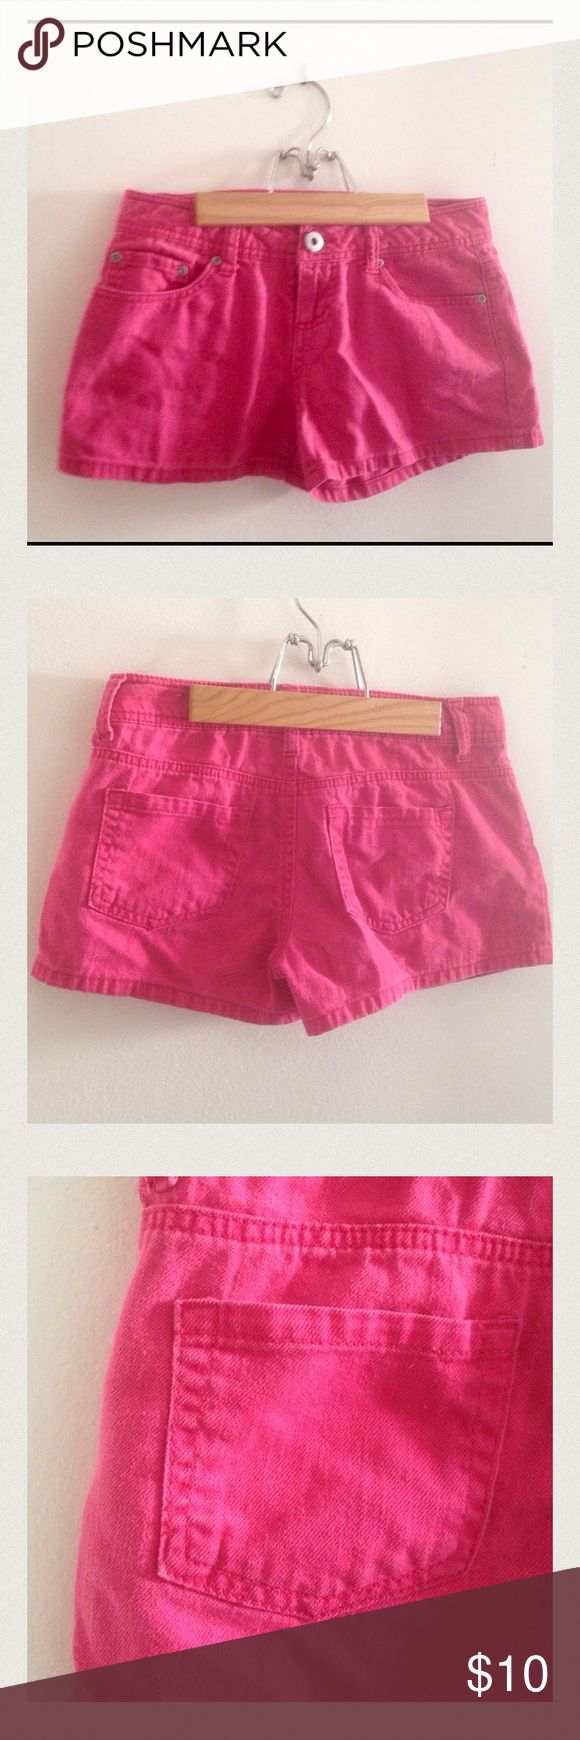 SO Hot Pink Shorts Juniors Size 3 So cute for summer! Gently used but no signs of wear! SO Brand hot pink shorts. Juniors size 3 100% cotton. MEASUREMENTS Laying Flat: Waist 14.5 inches Inseam 2.5 inches. SO Shorts Jean Shorts